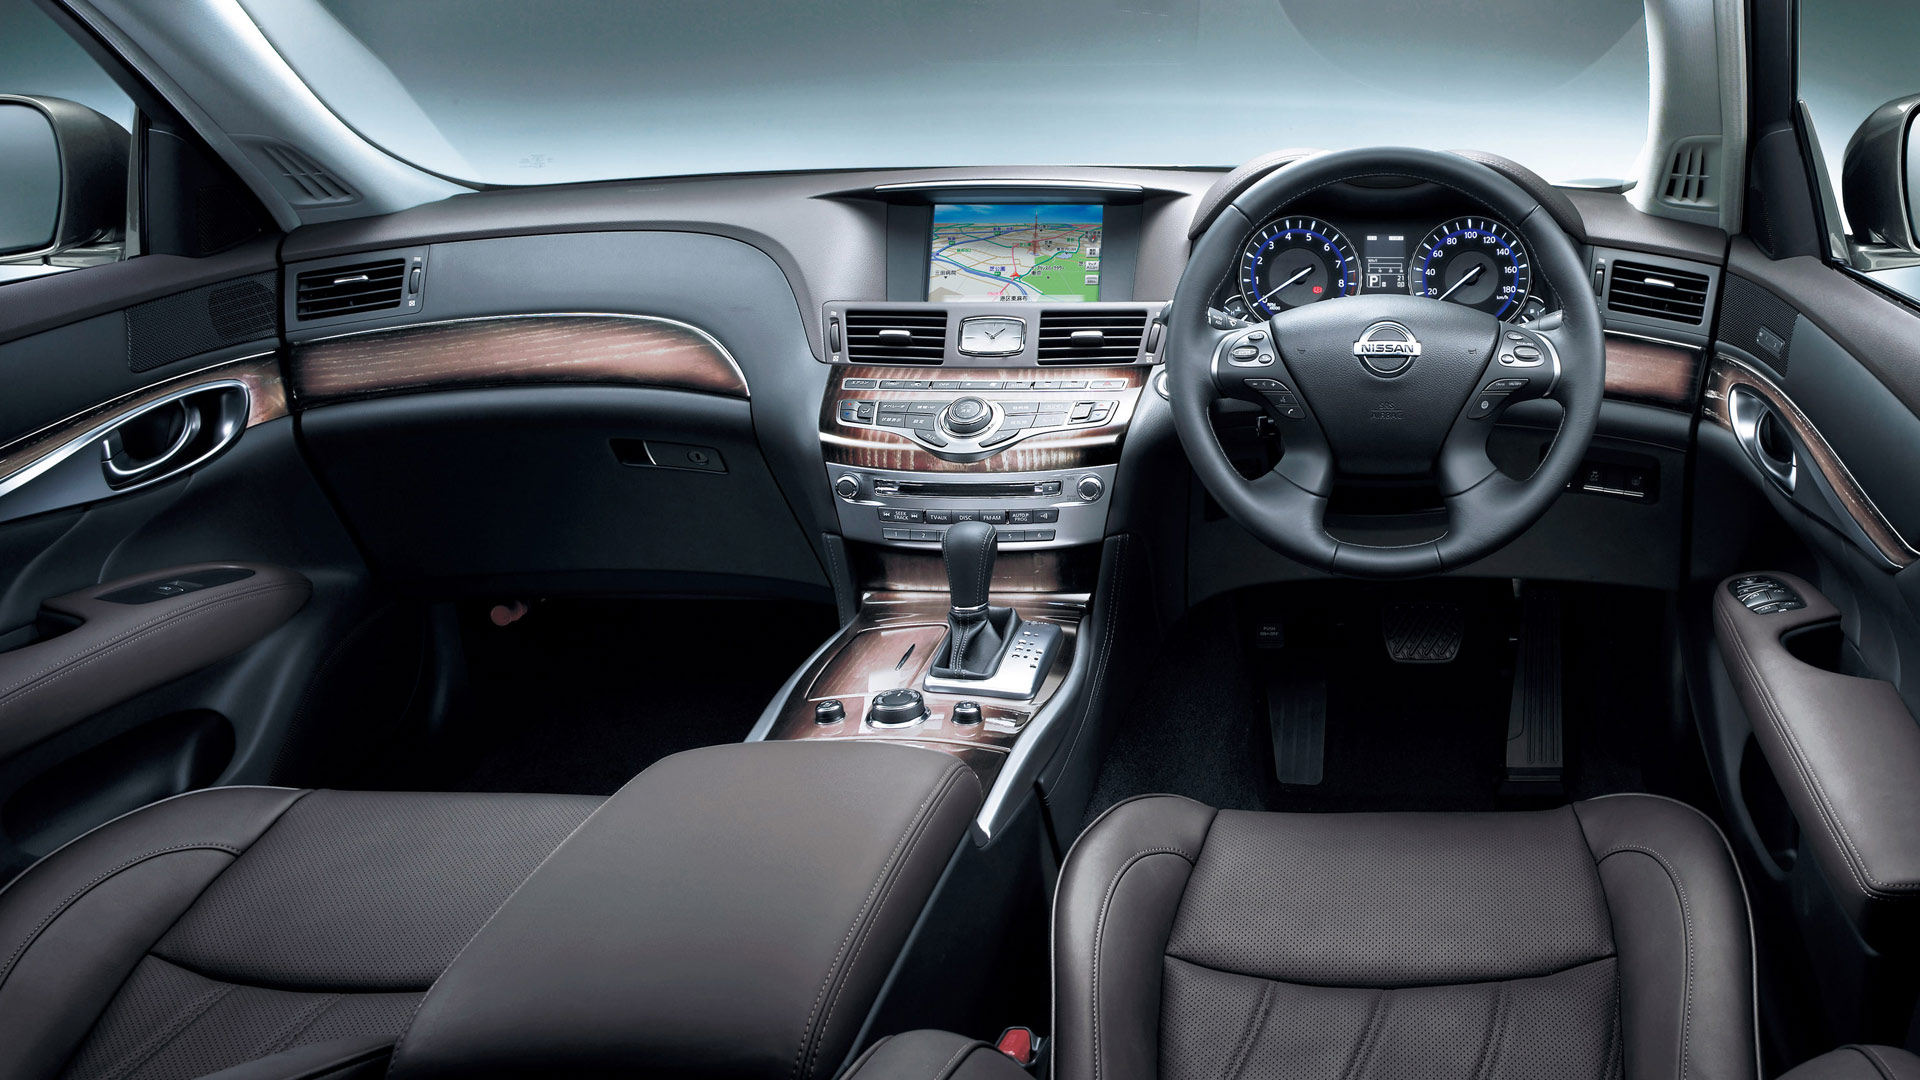 Nissan Fuga 350gt Infiniti M35 Interior Dashboard Wallpaper